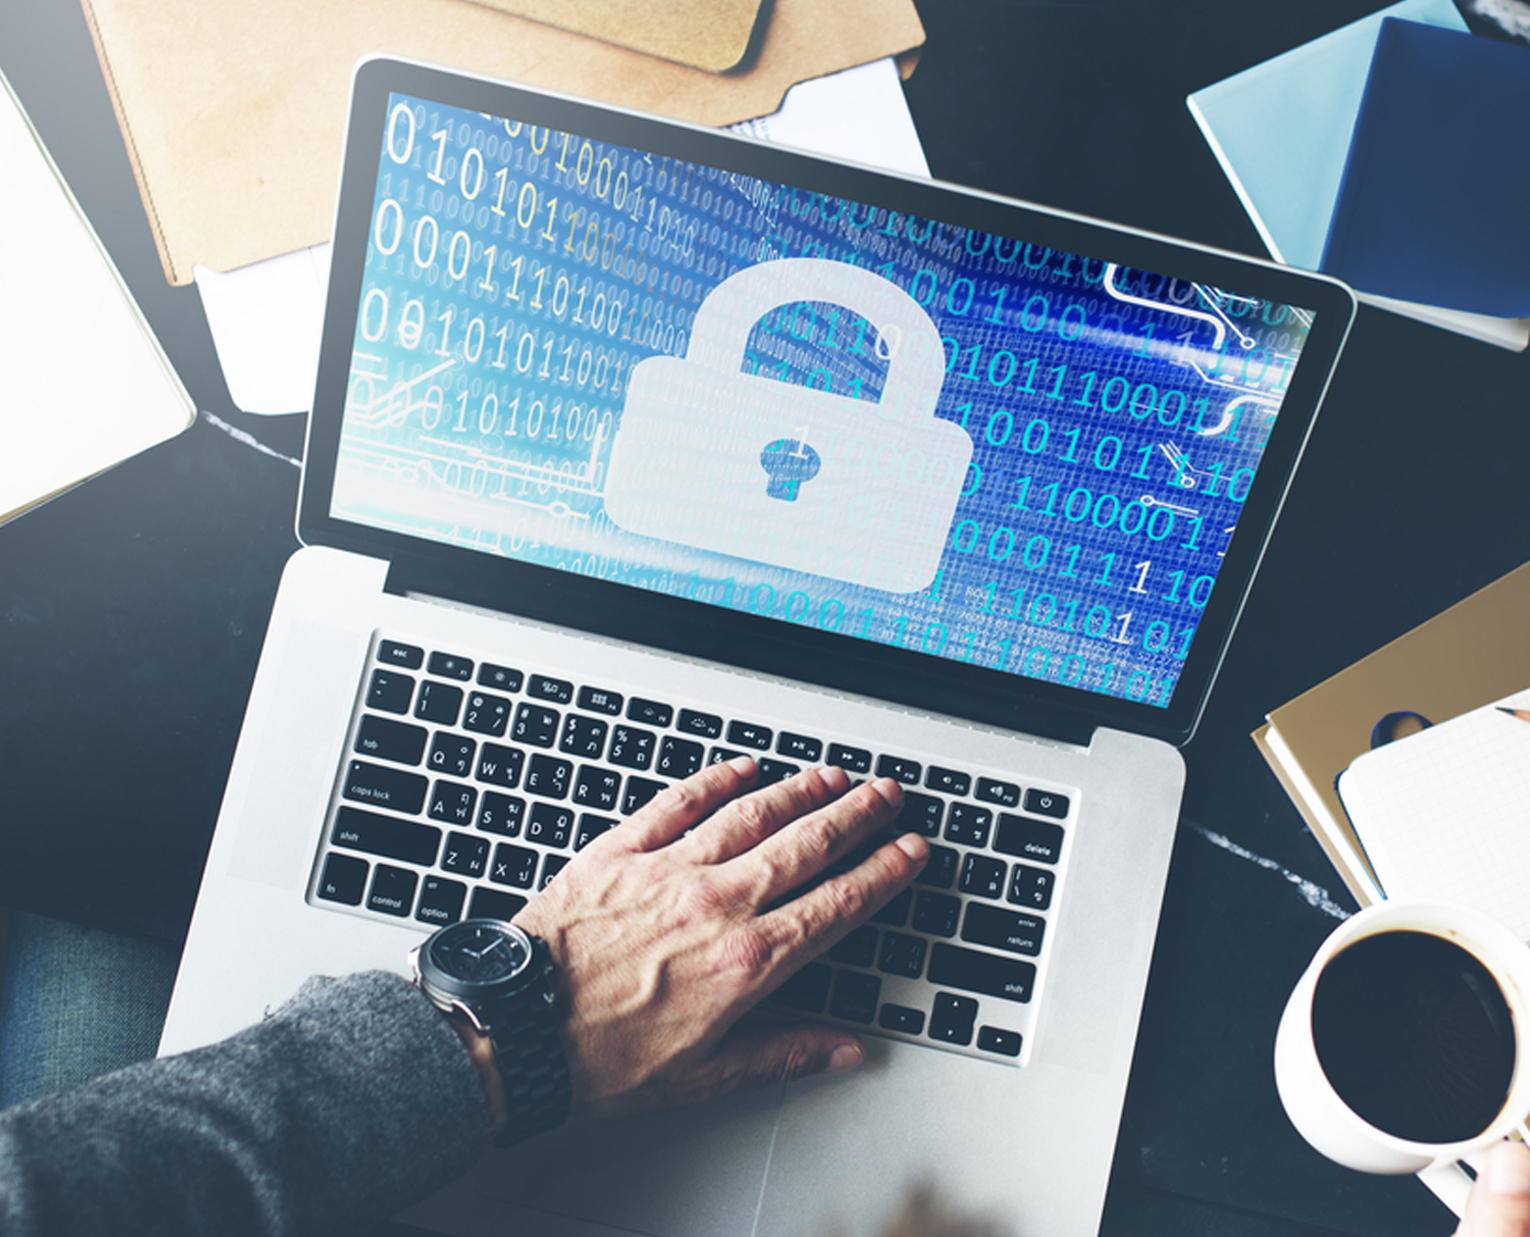 How to ensure data security while outsourcing?